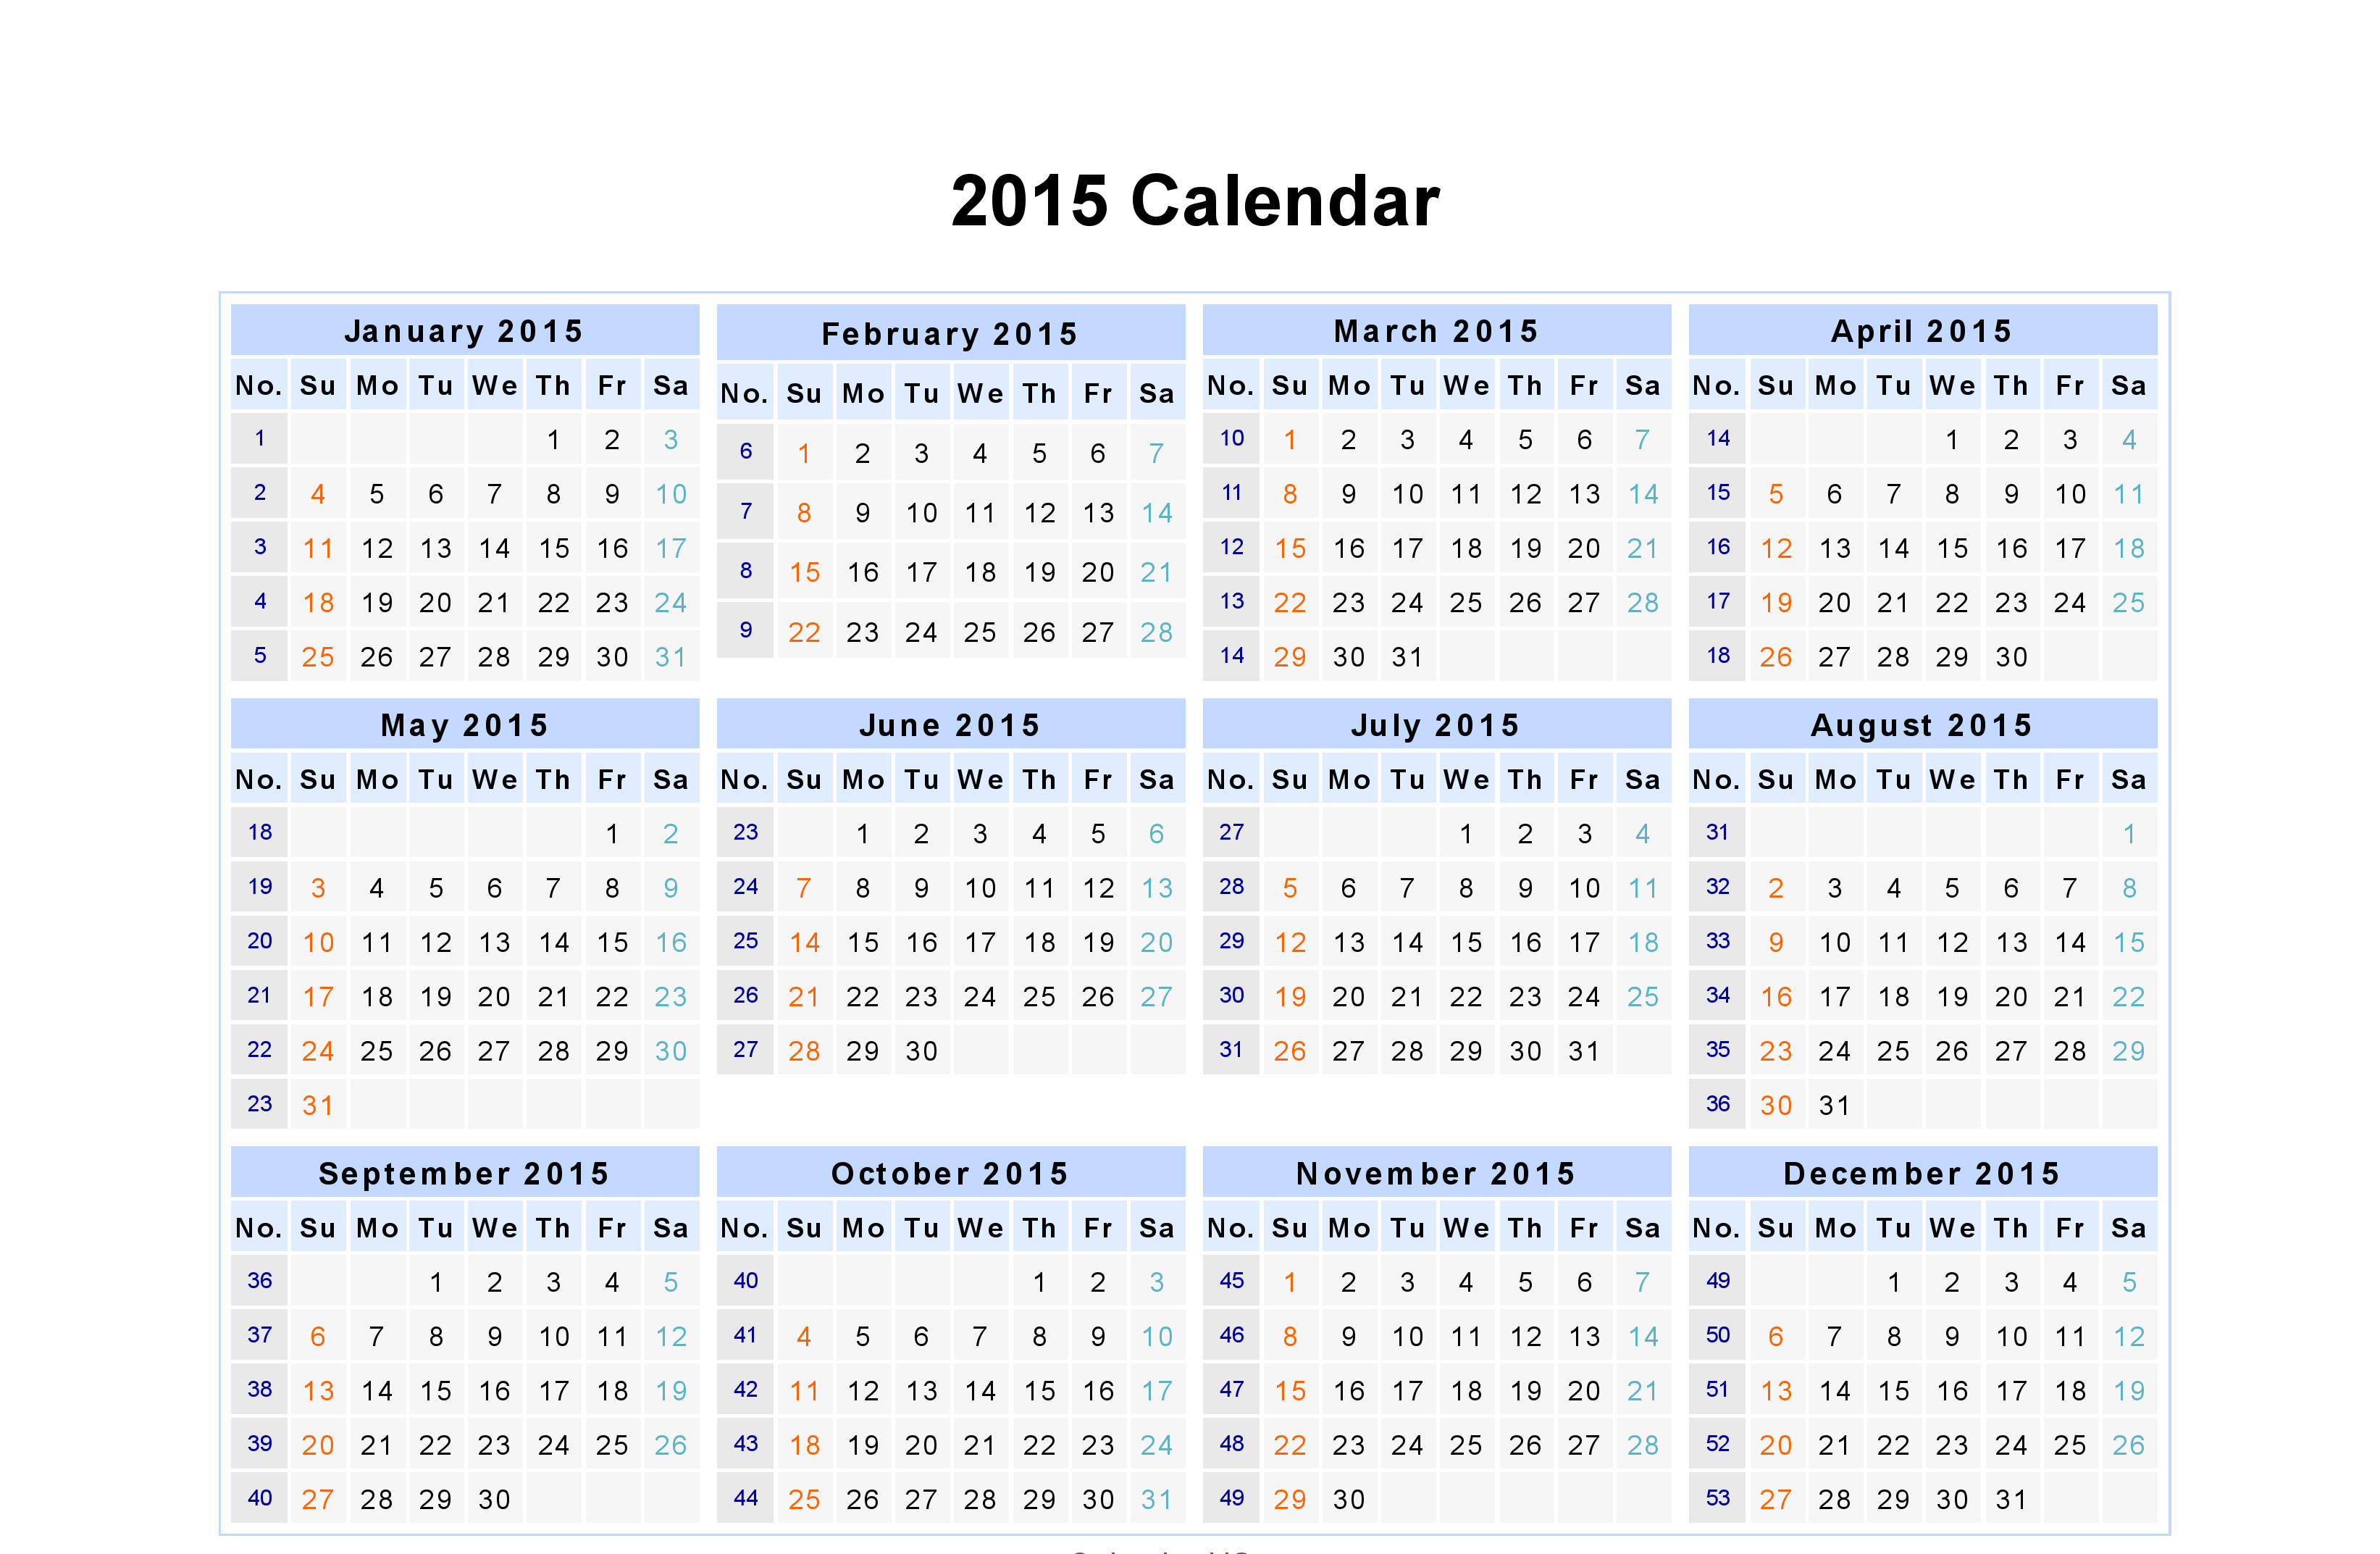 Year Calendar History : Monthly date wise calendar year history pinterest